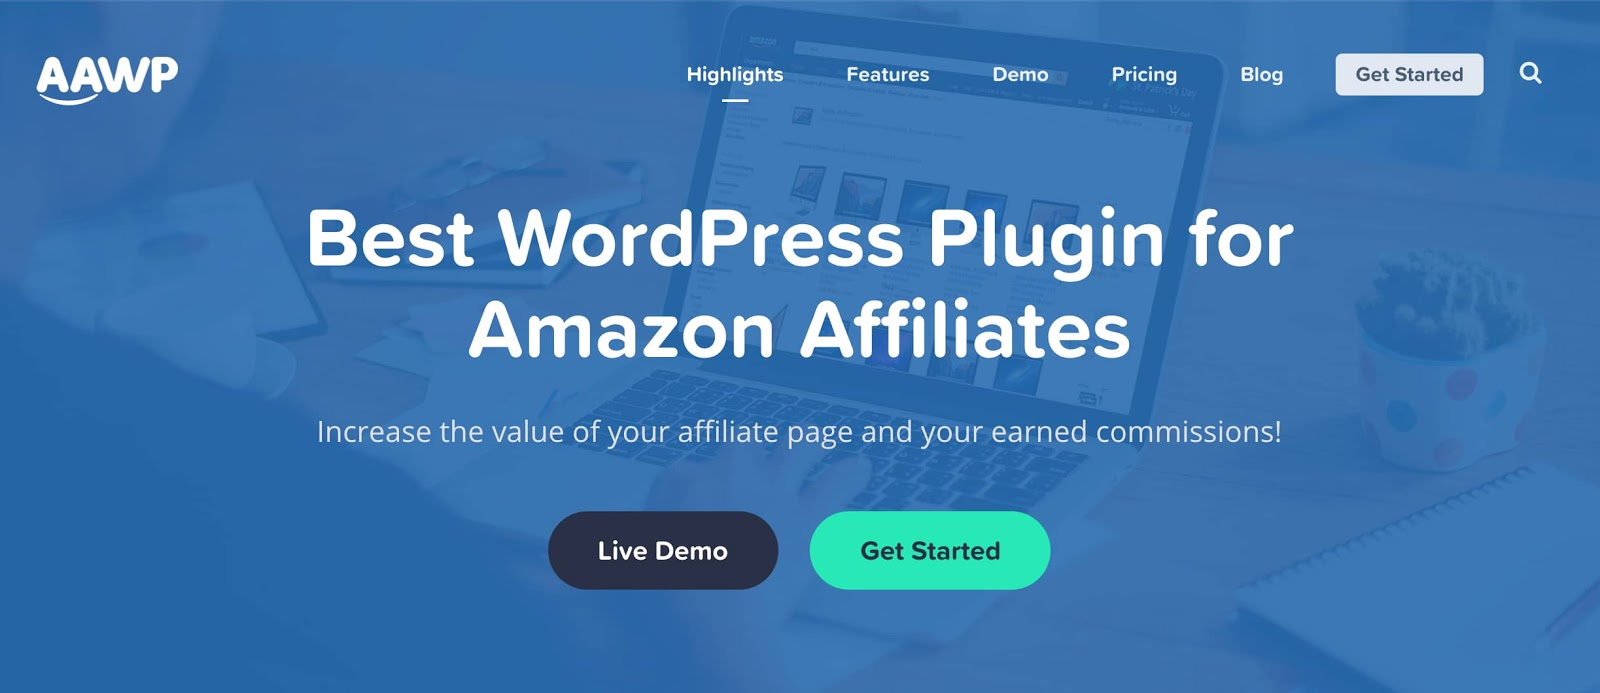 product page for the amazon affiliate wordpress plugin AAWP